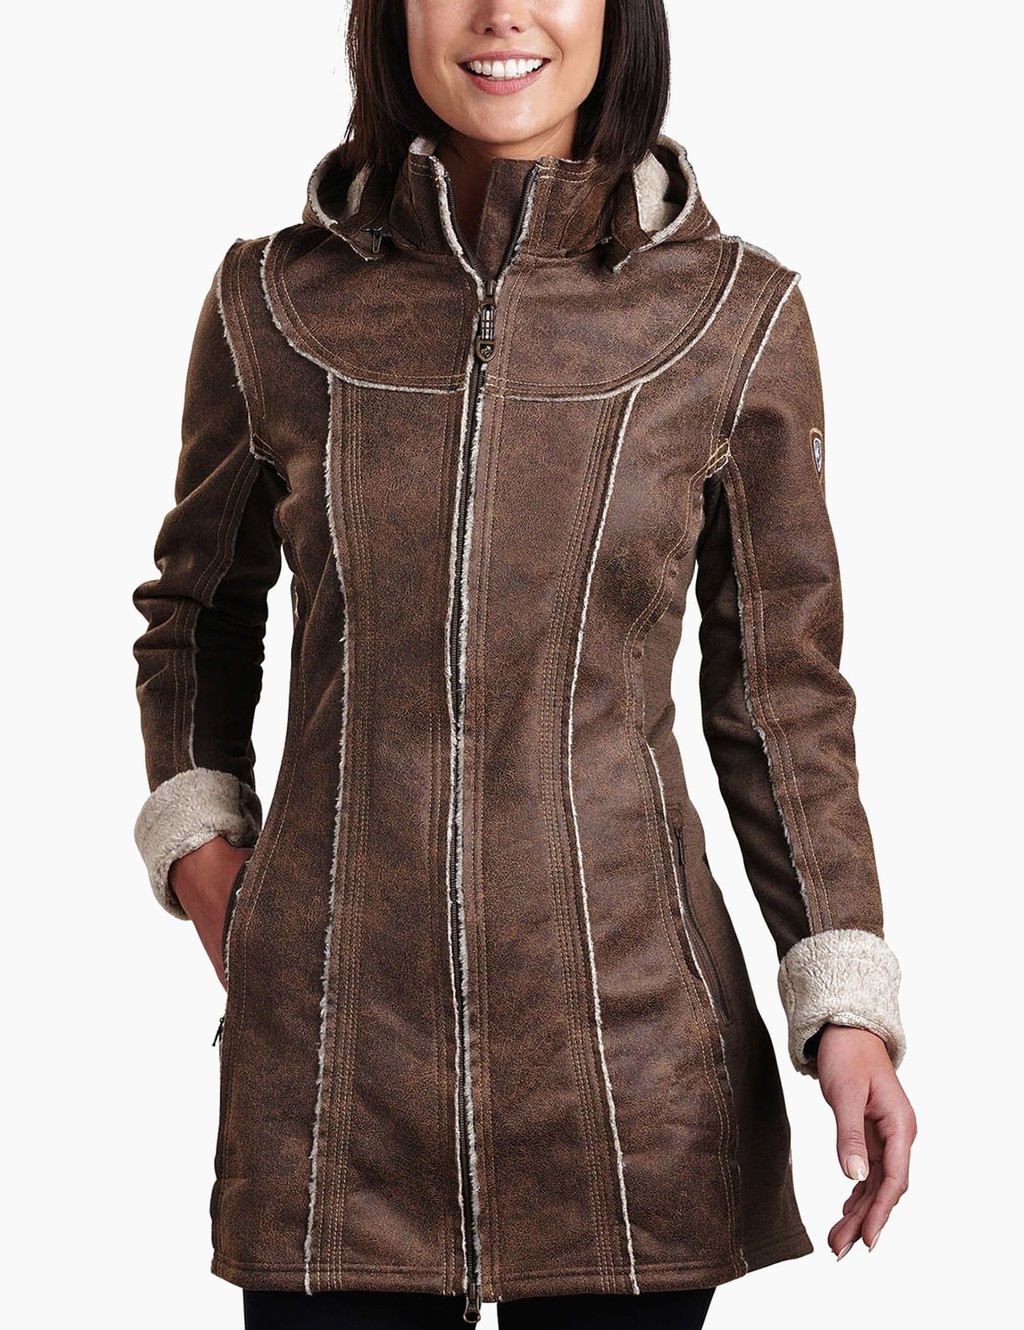 Shop Dani Sherpa Trench - KUHL Studio Photo Gifts for female travelers